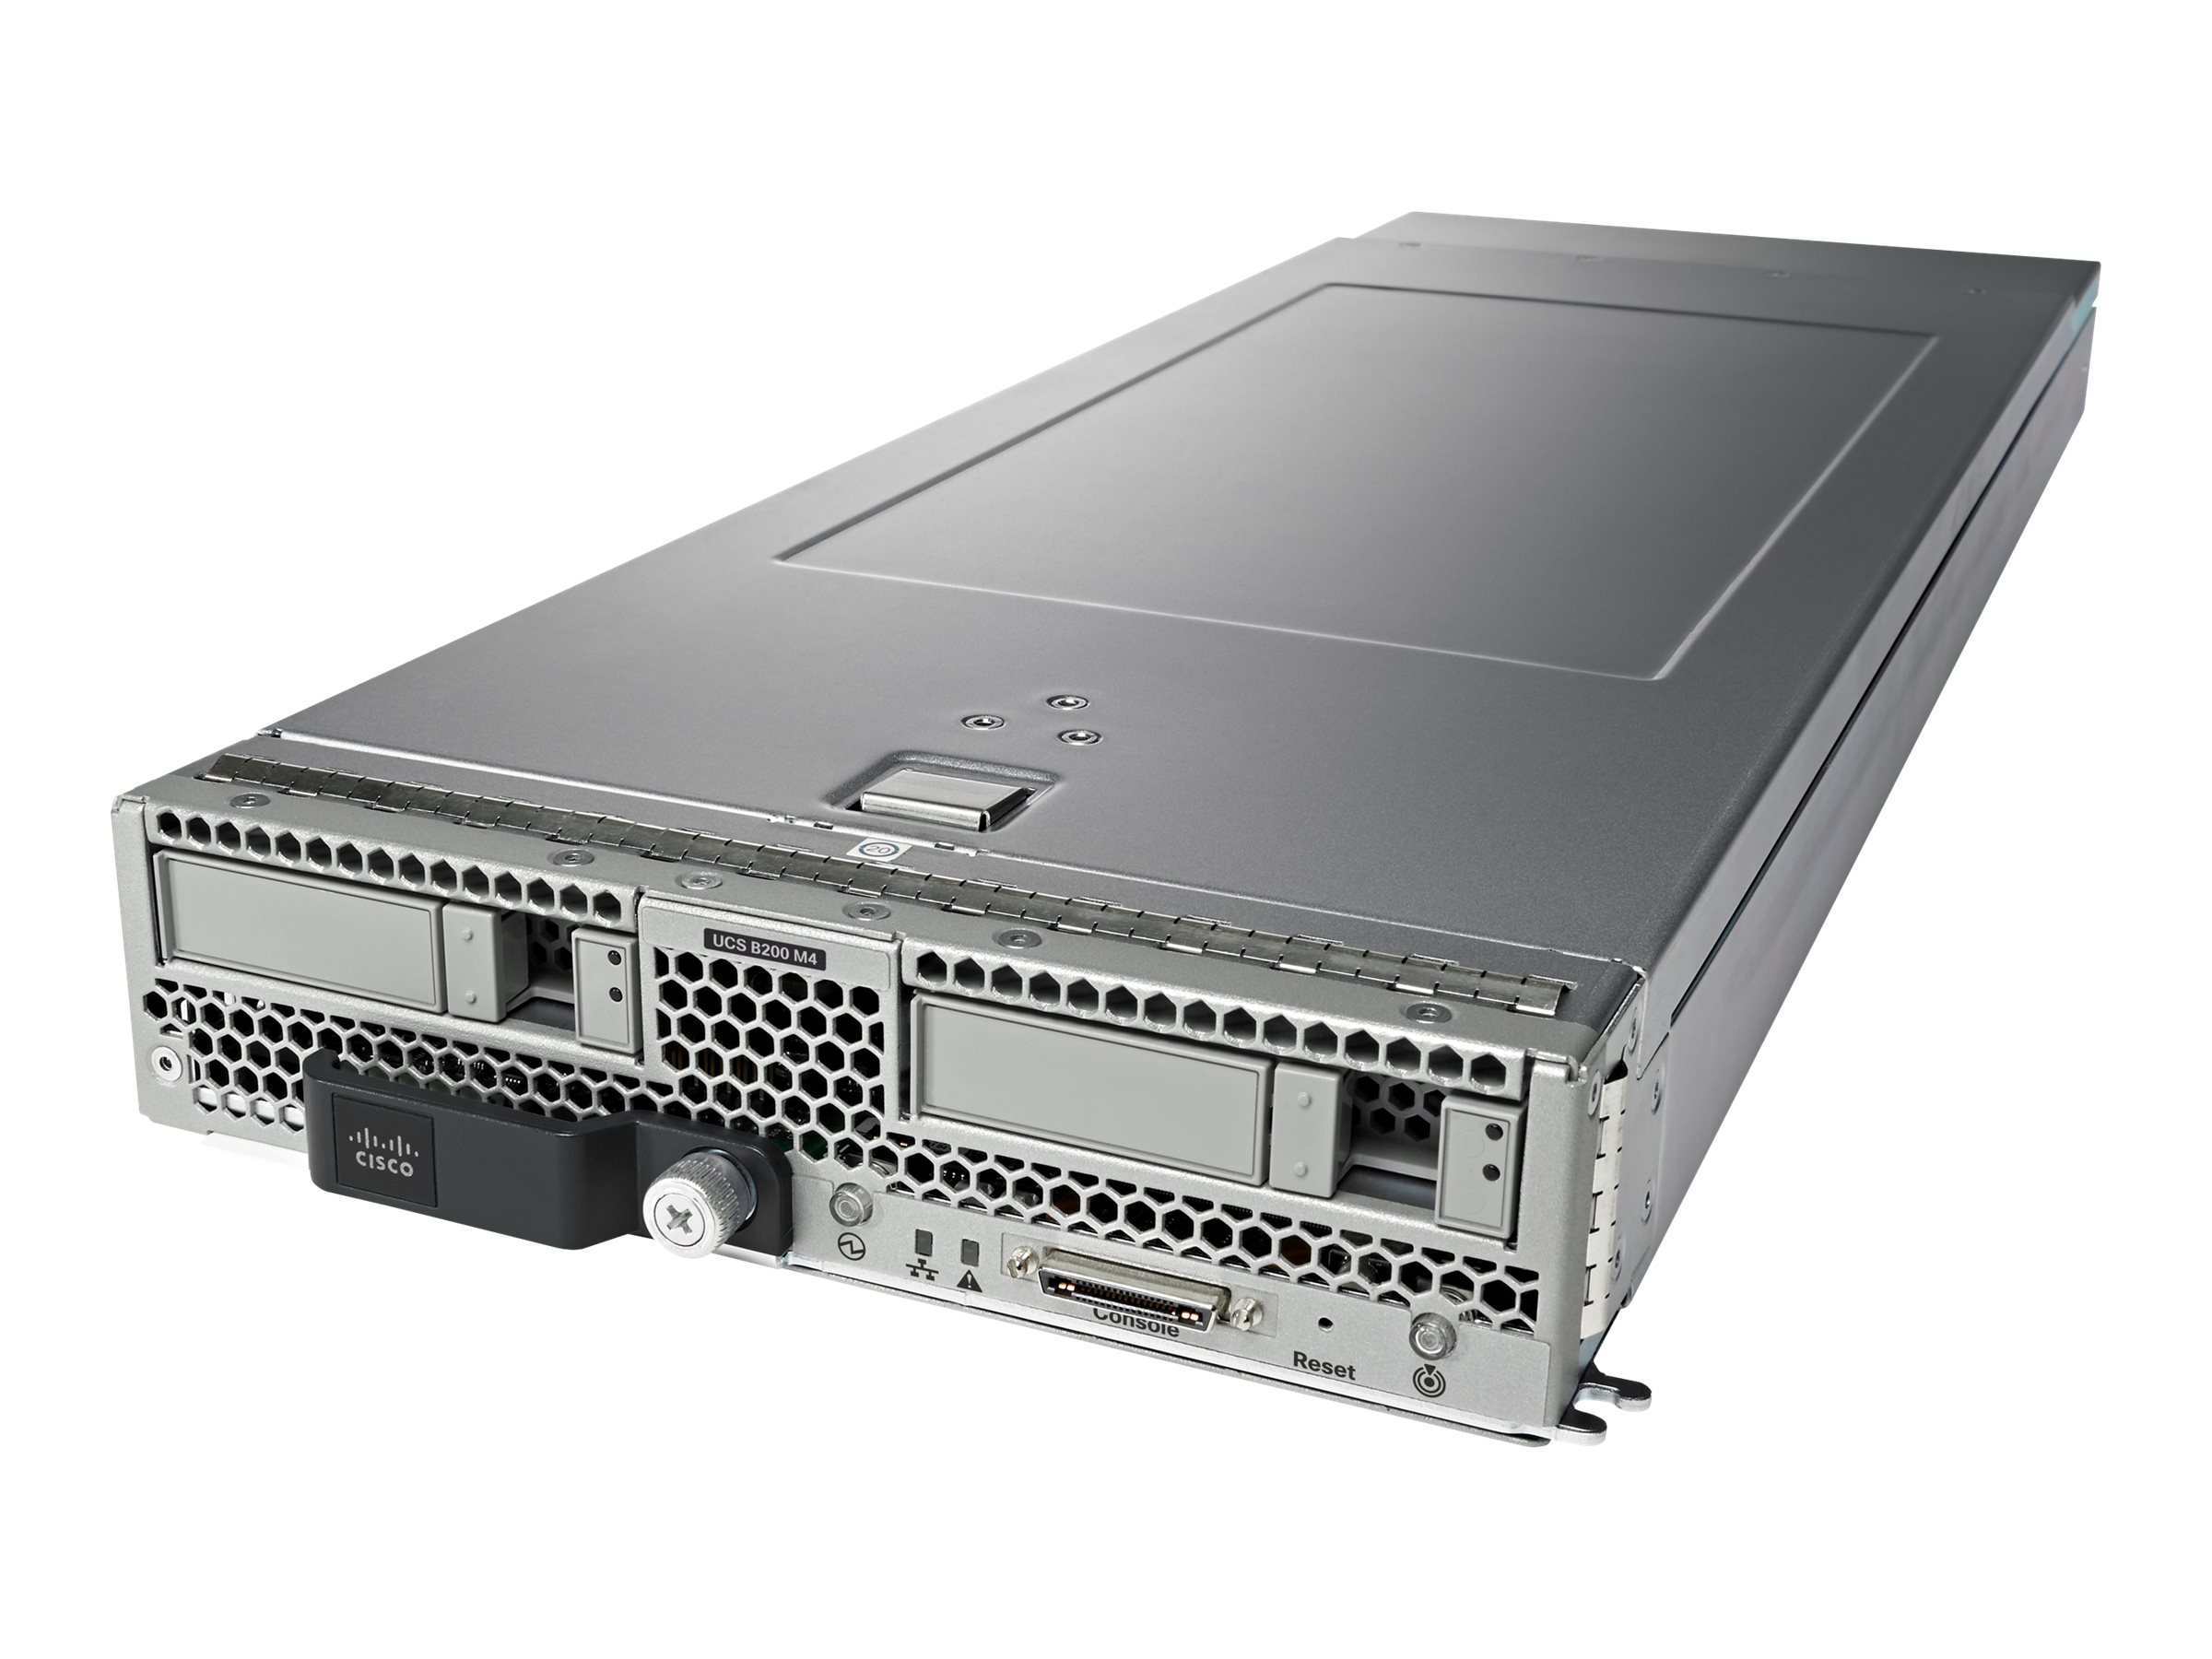 Cisco Not Sold Standalone UCS B200 M4 Adv1 (2x)E5-2690 v3 256GB VIC1340